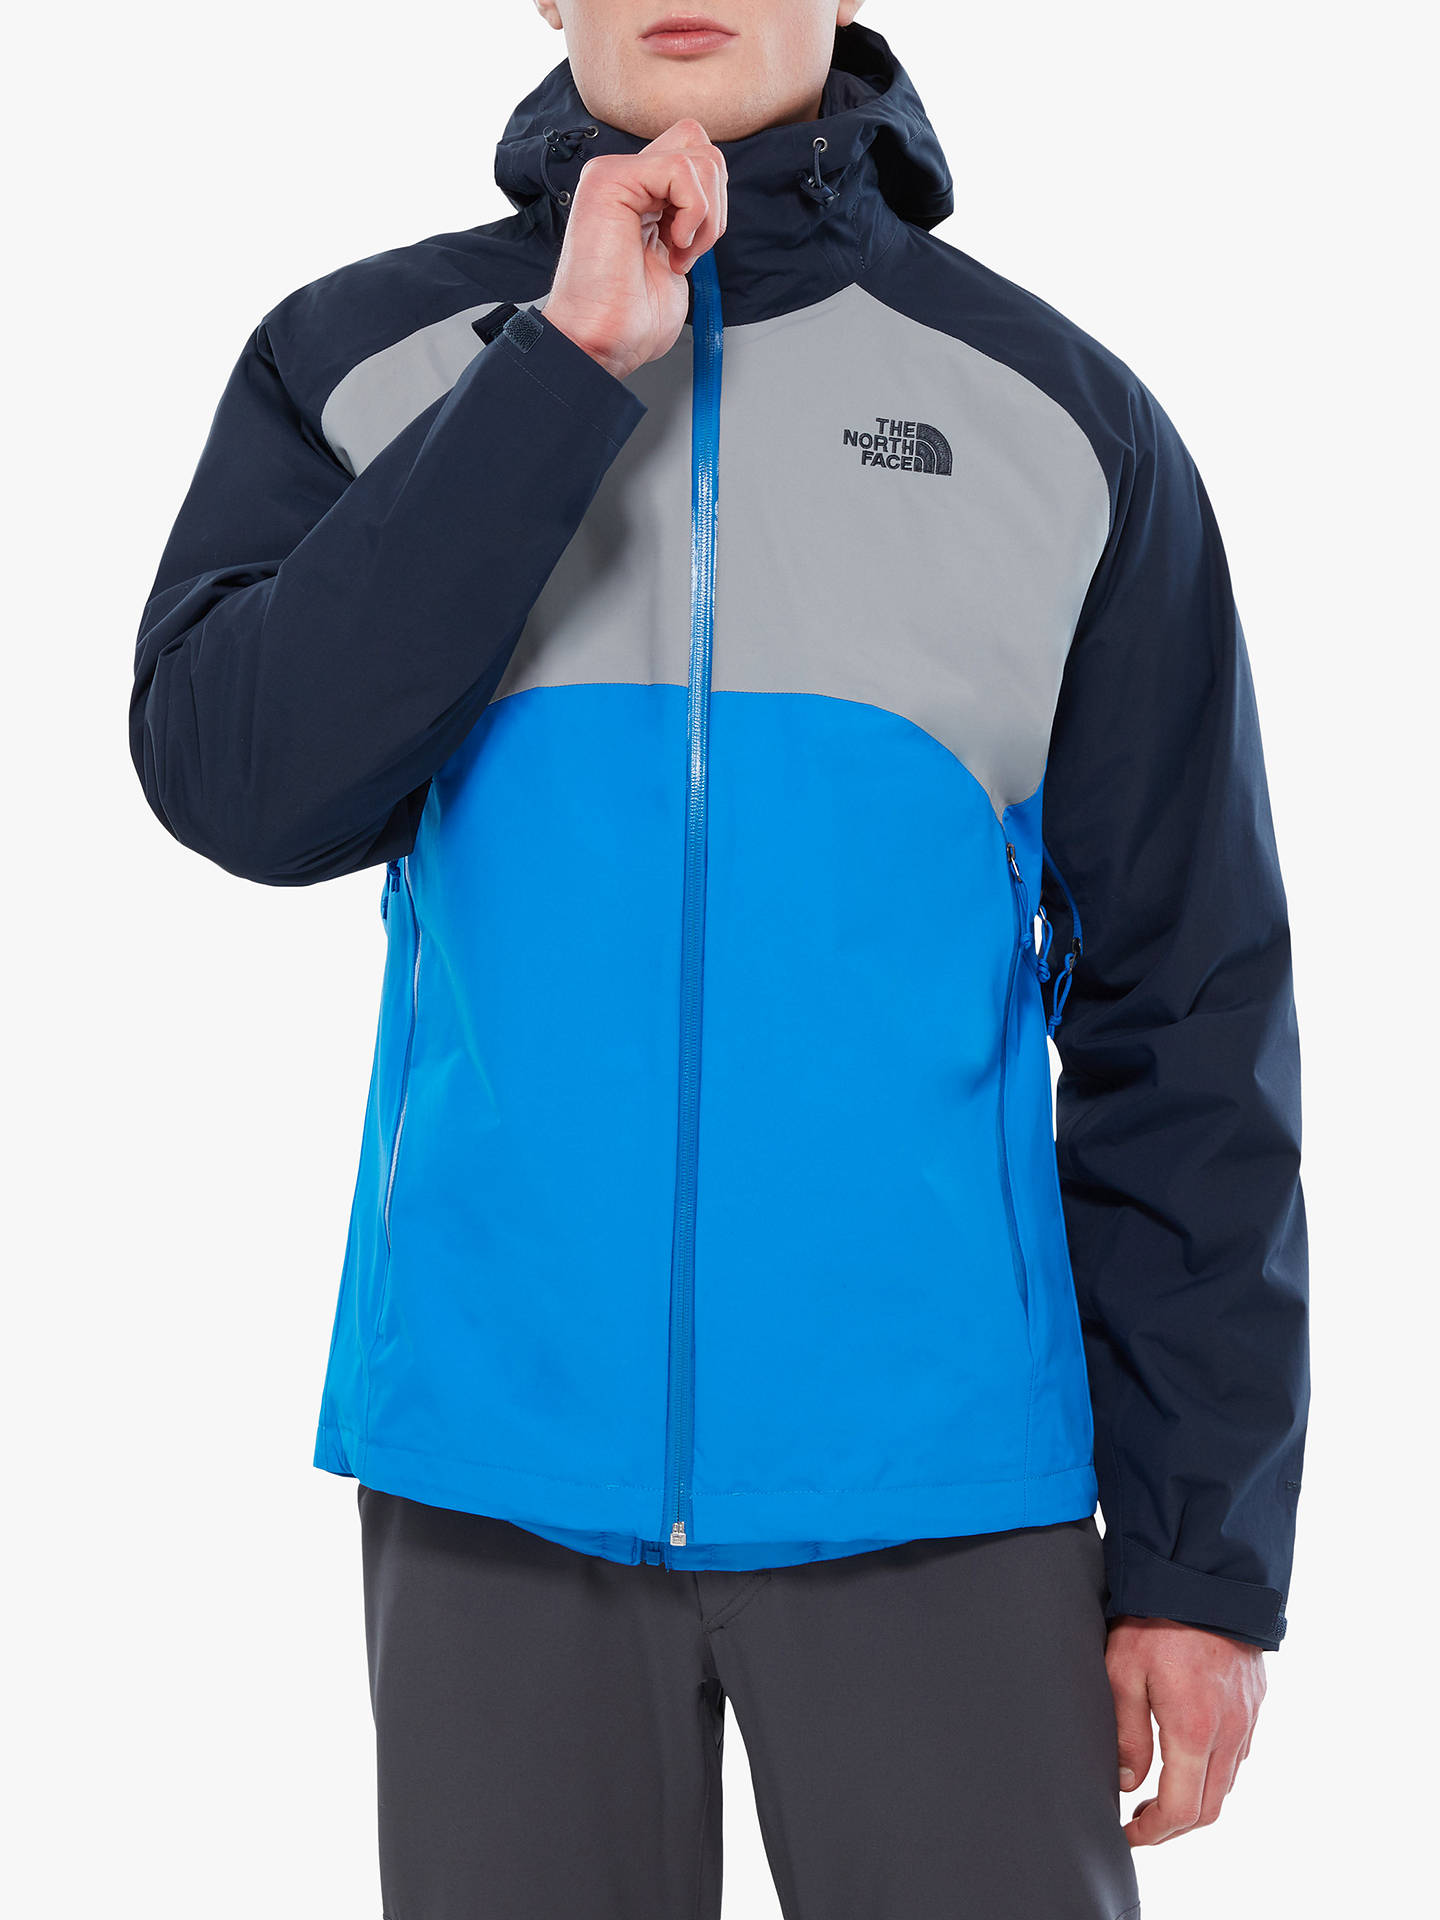 129631cde The North Face Stratos Men's Waterproof Jacket, Bomberble/Mid Grey/Urban  Navy